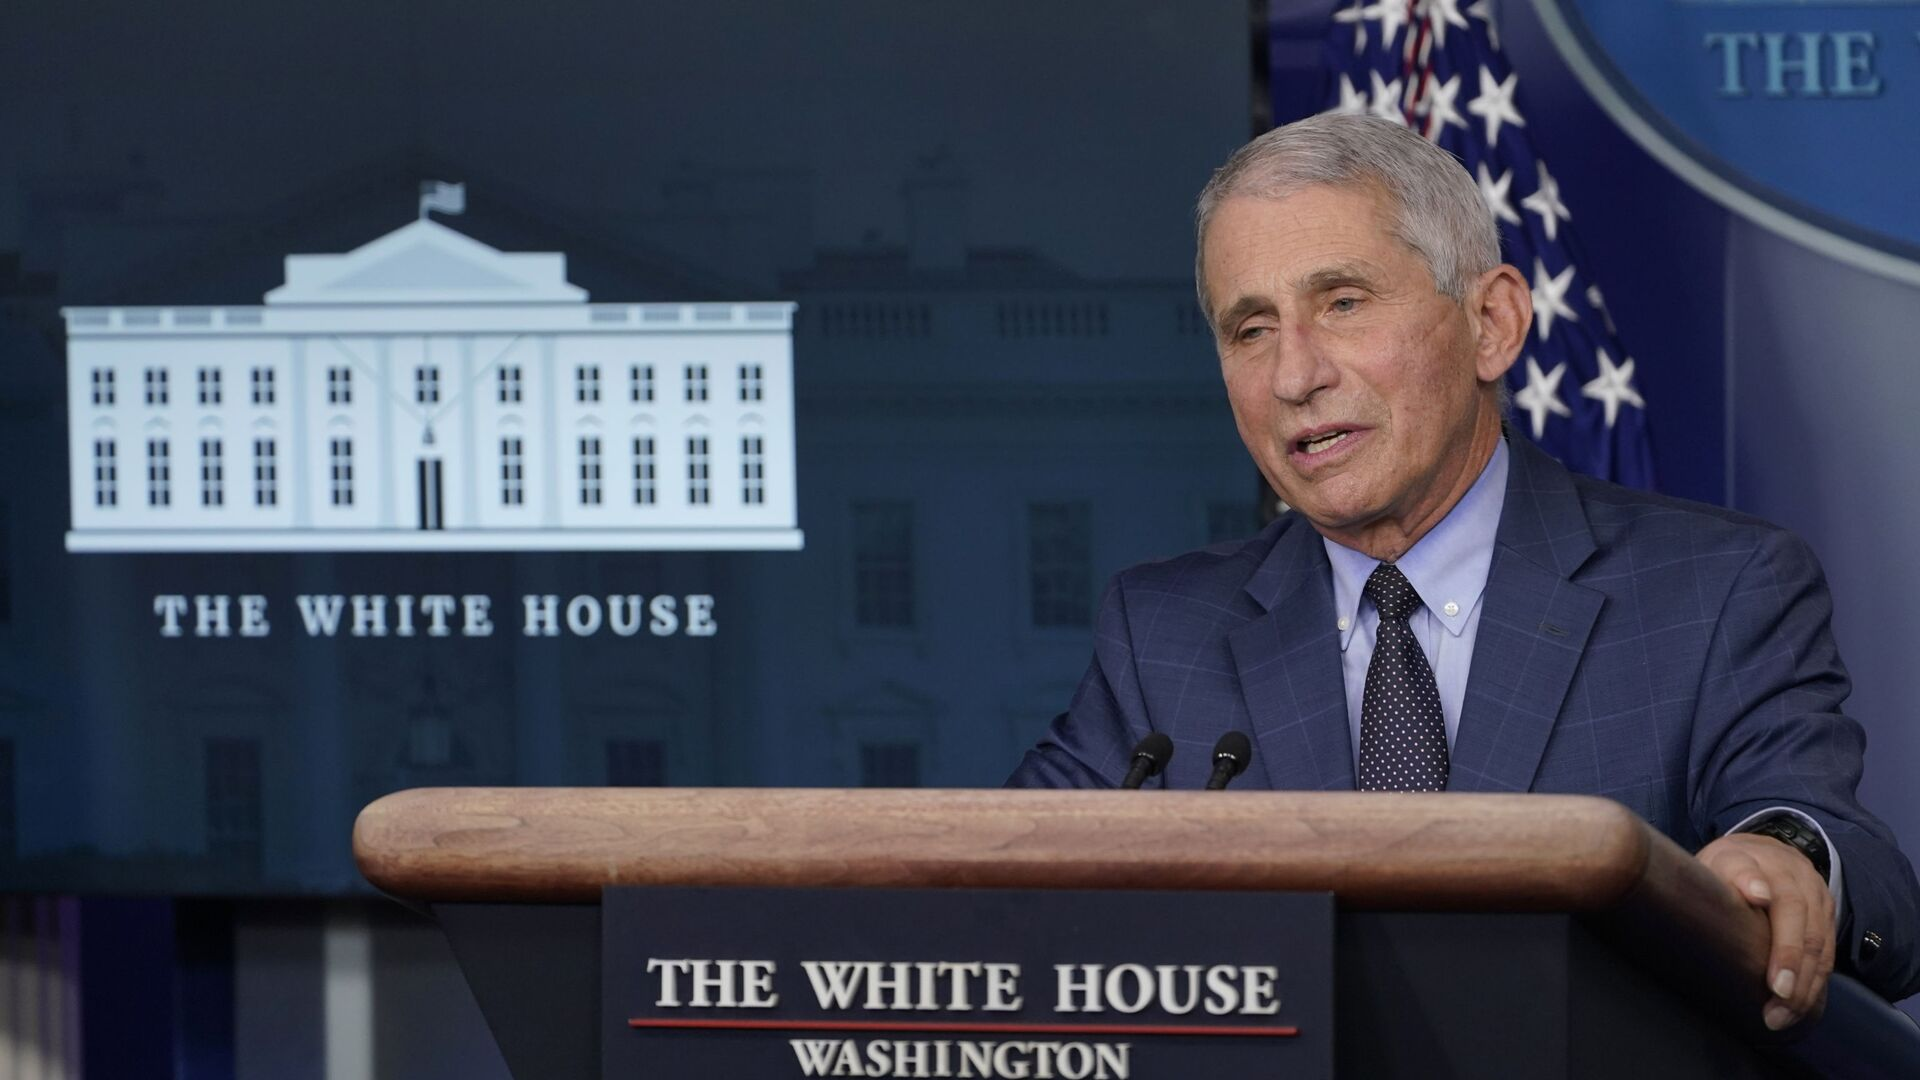 Dr. Anthony Fauci, director of the National Institute of Allergy and Infectious Diseases, speaks during a briefing with the coronavirus task force at the White House in Washington, Thursday, Nov. 19, 2020 - Sputnik Italia, 1920, 31.03.2021